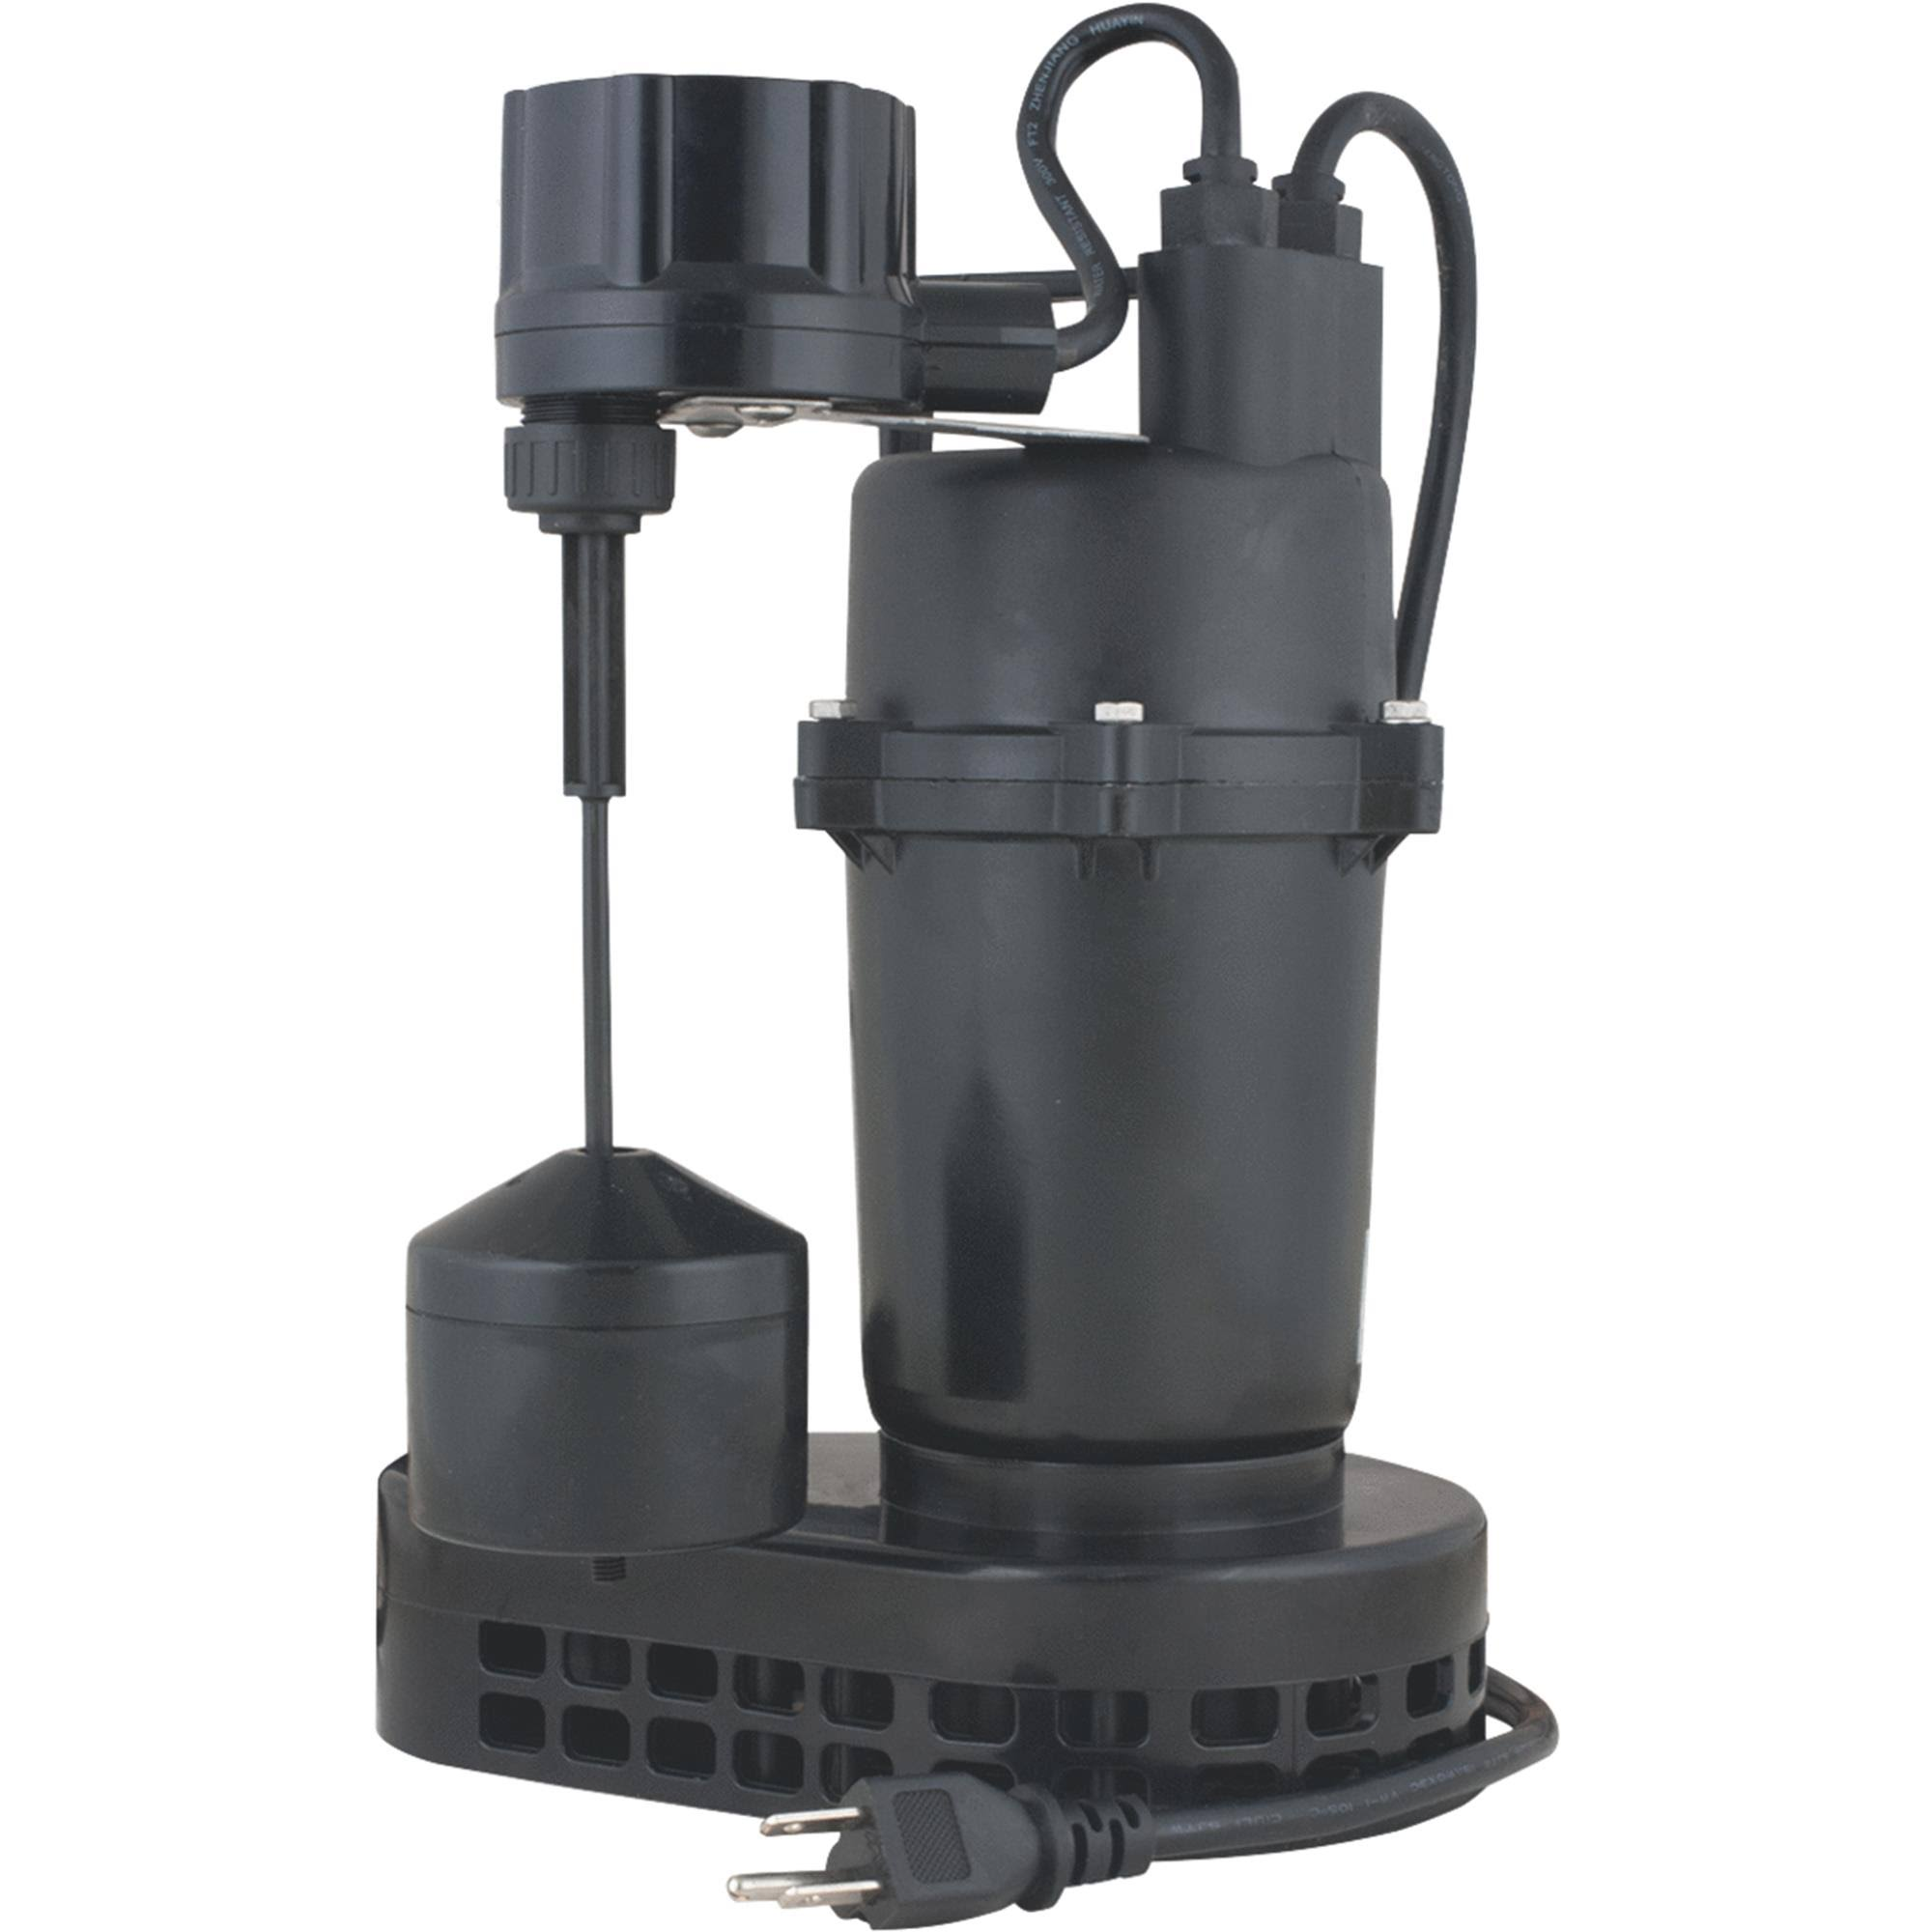 Do It Submersible Sump Pump - 115V